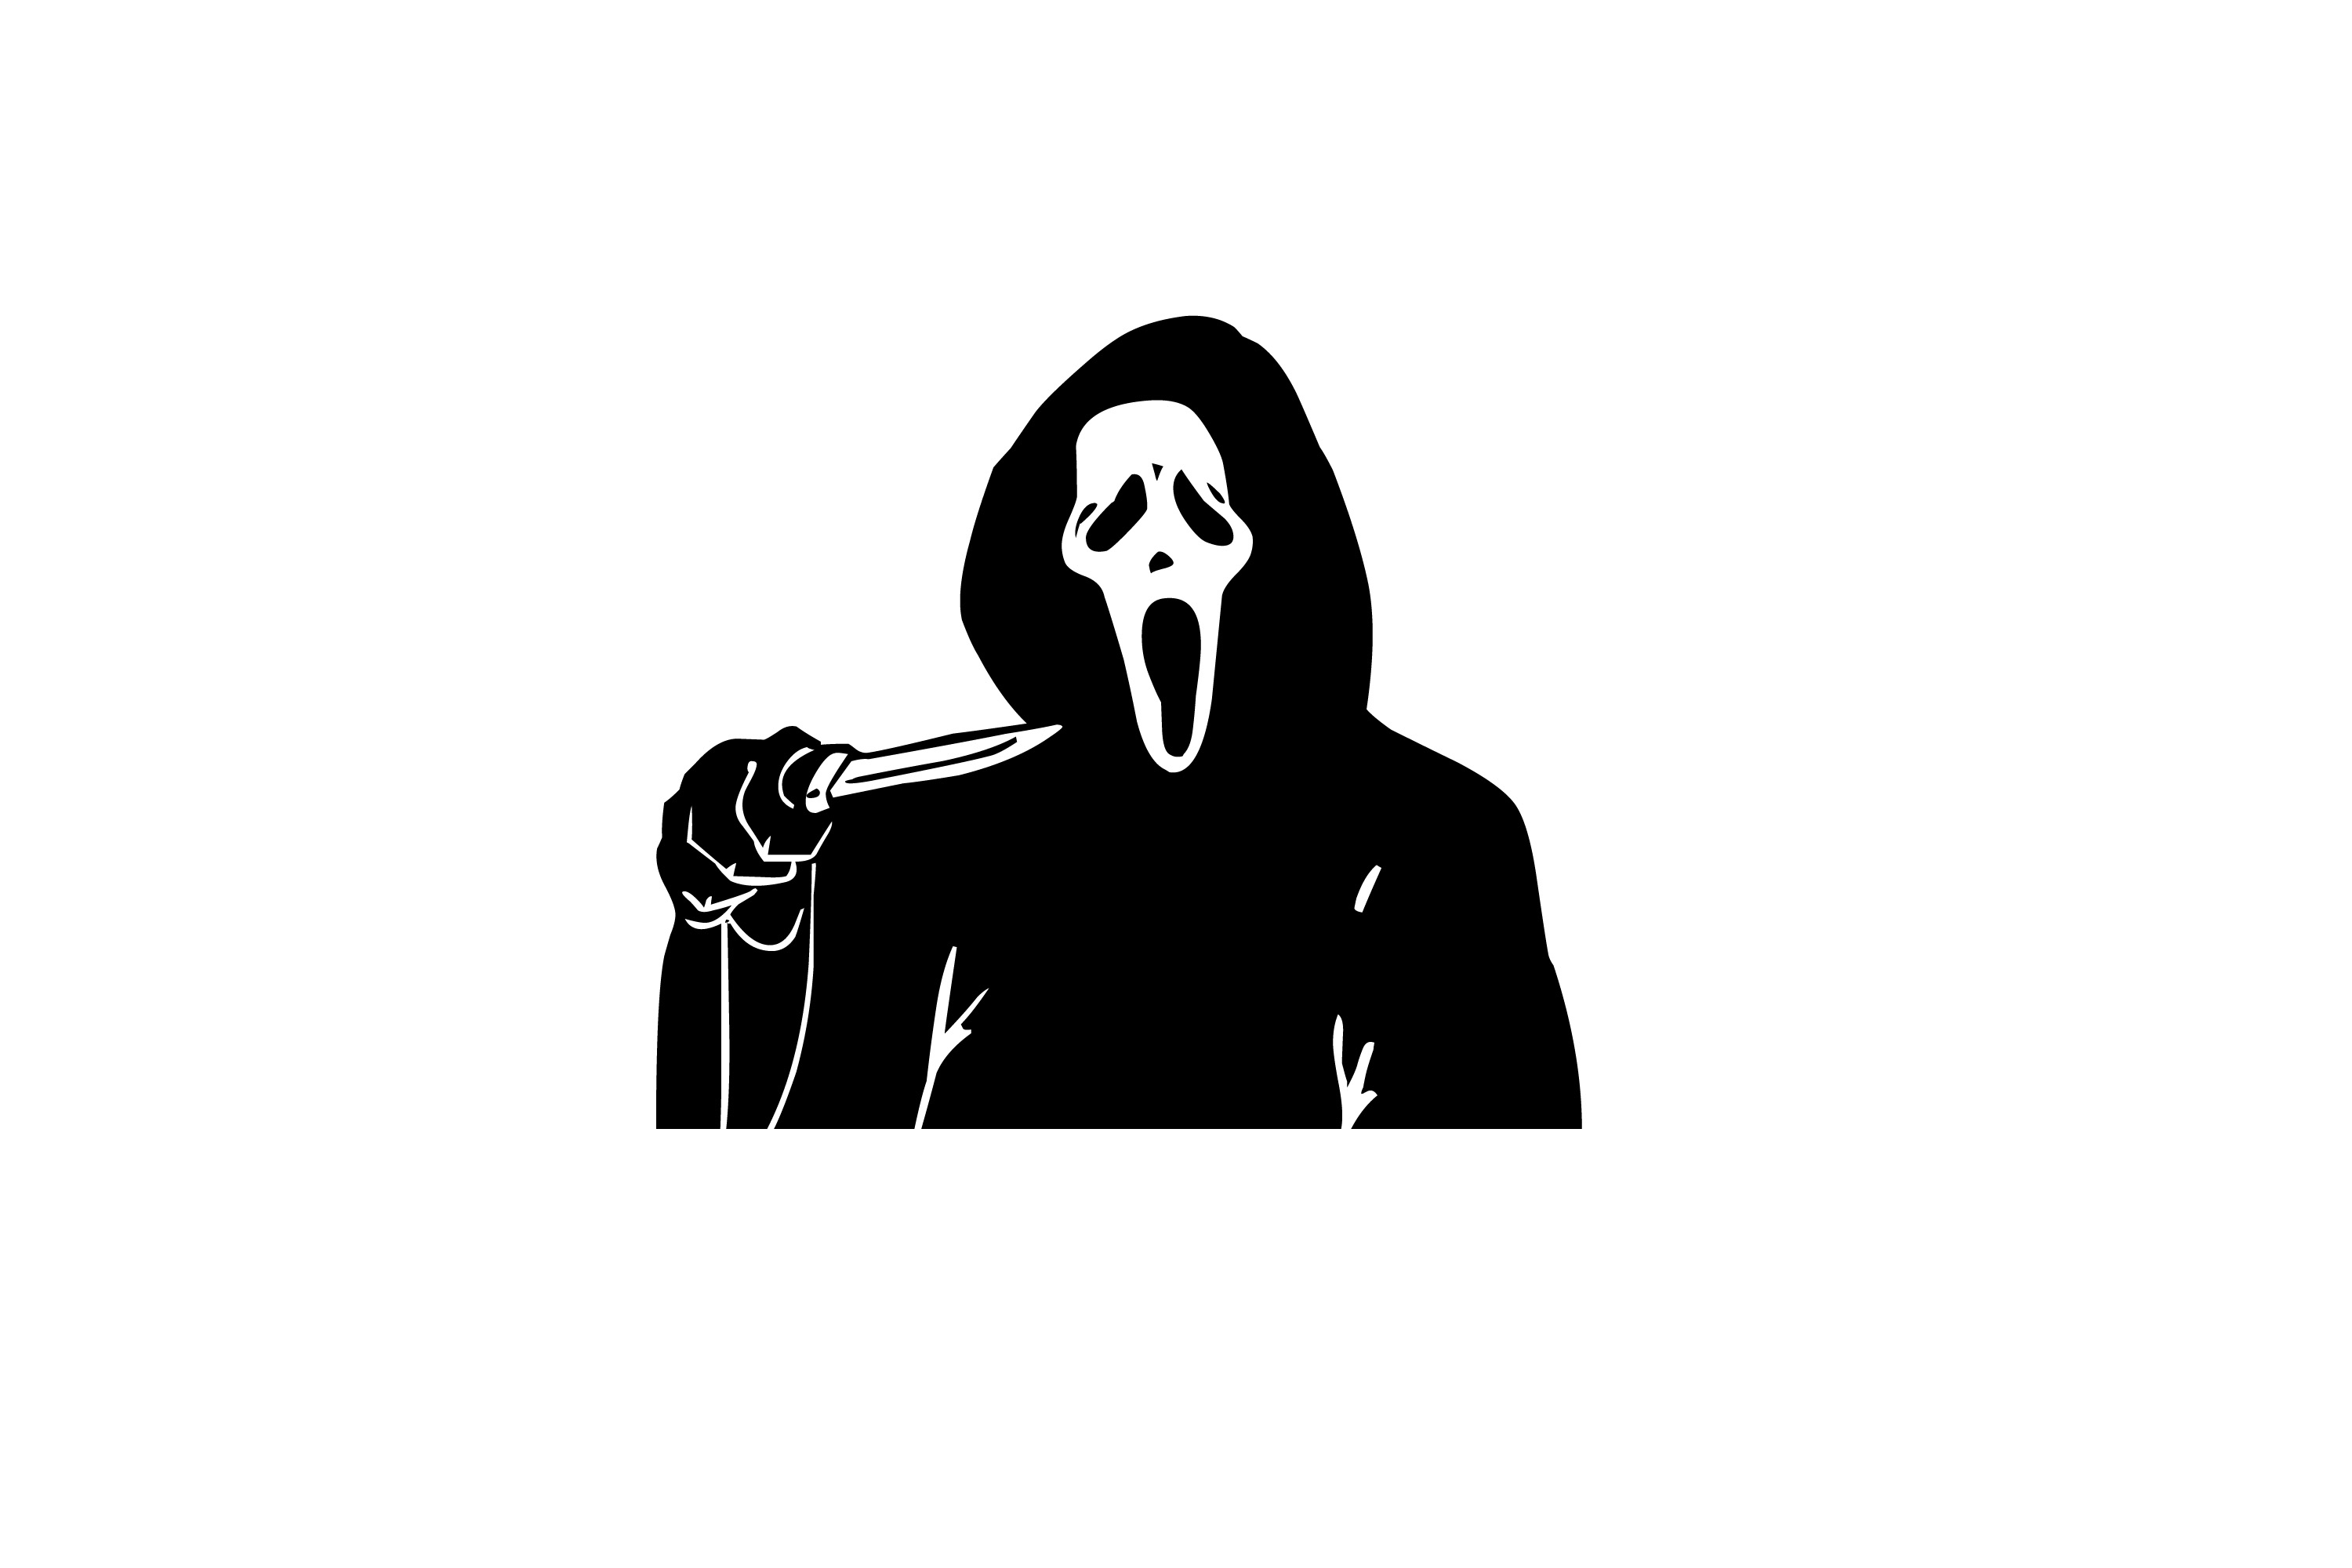 Scream mask clipart png royalty free stock Image of scream mask | CreepyHalloweenImages png royalty free stock